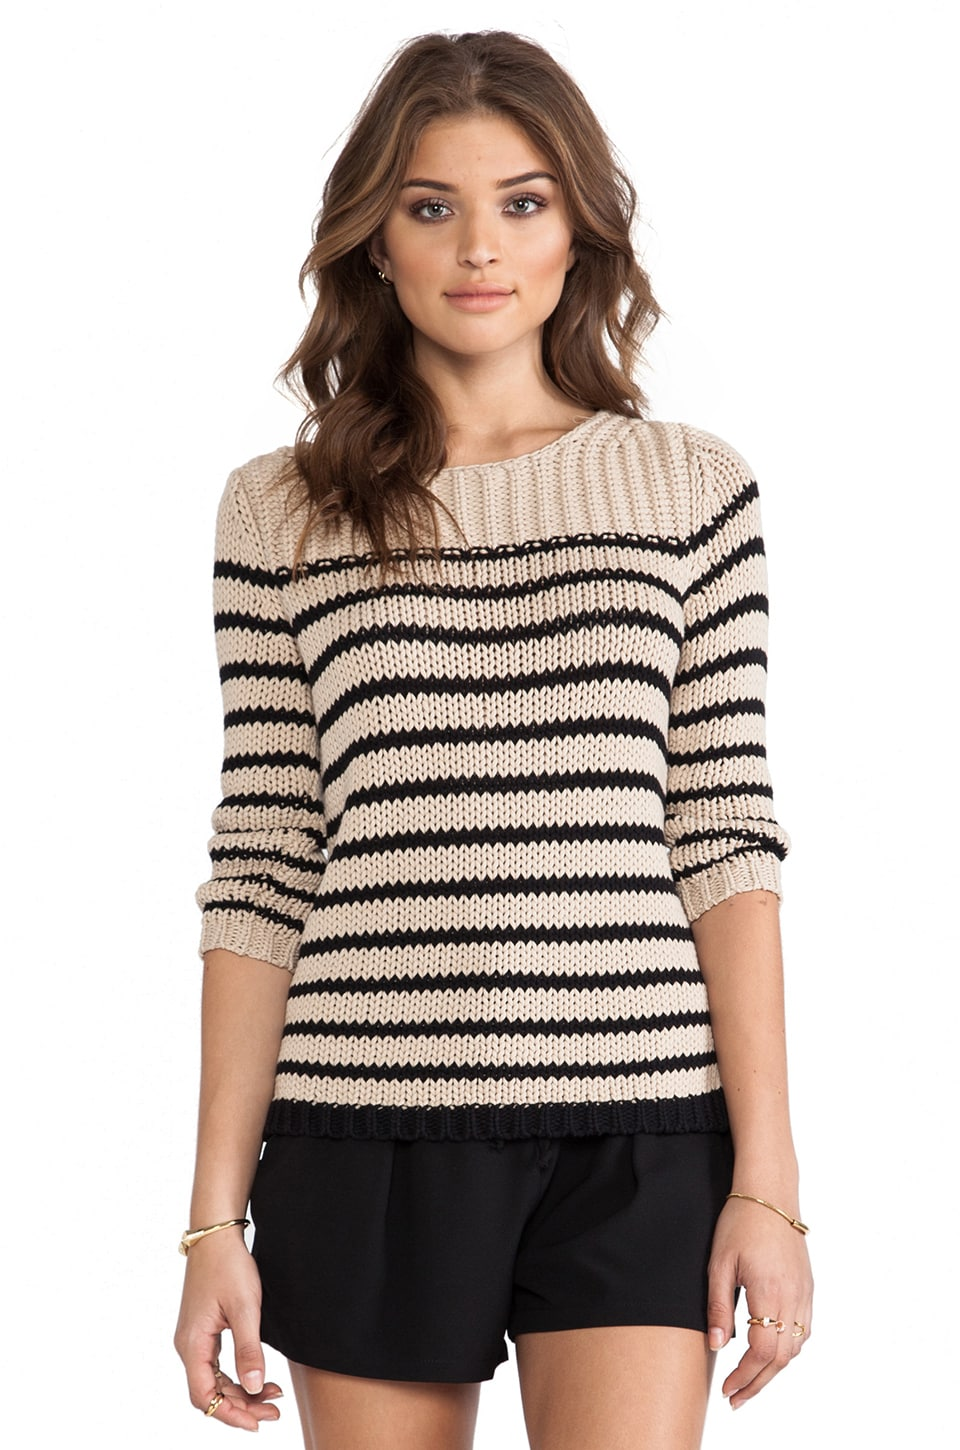 360 Sweater Darby Striped Sweater in Clay & Black Stripes